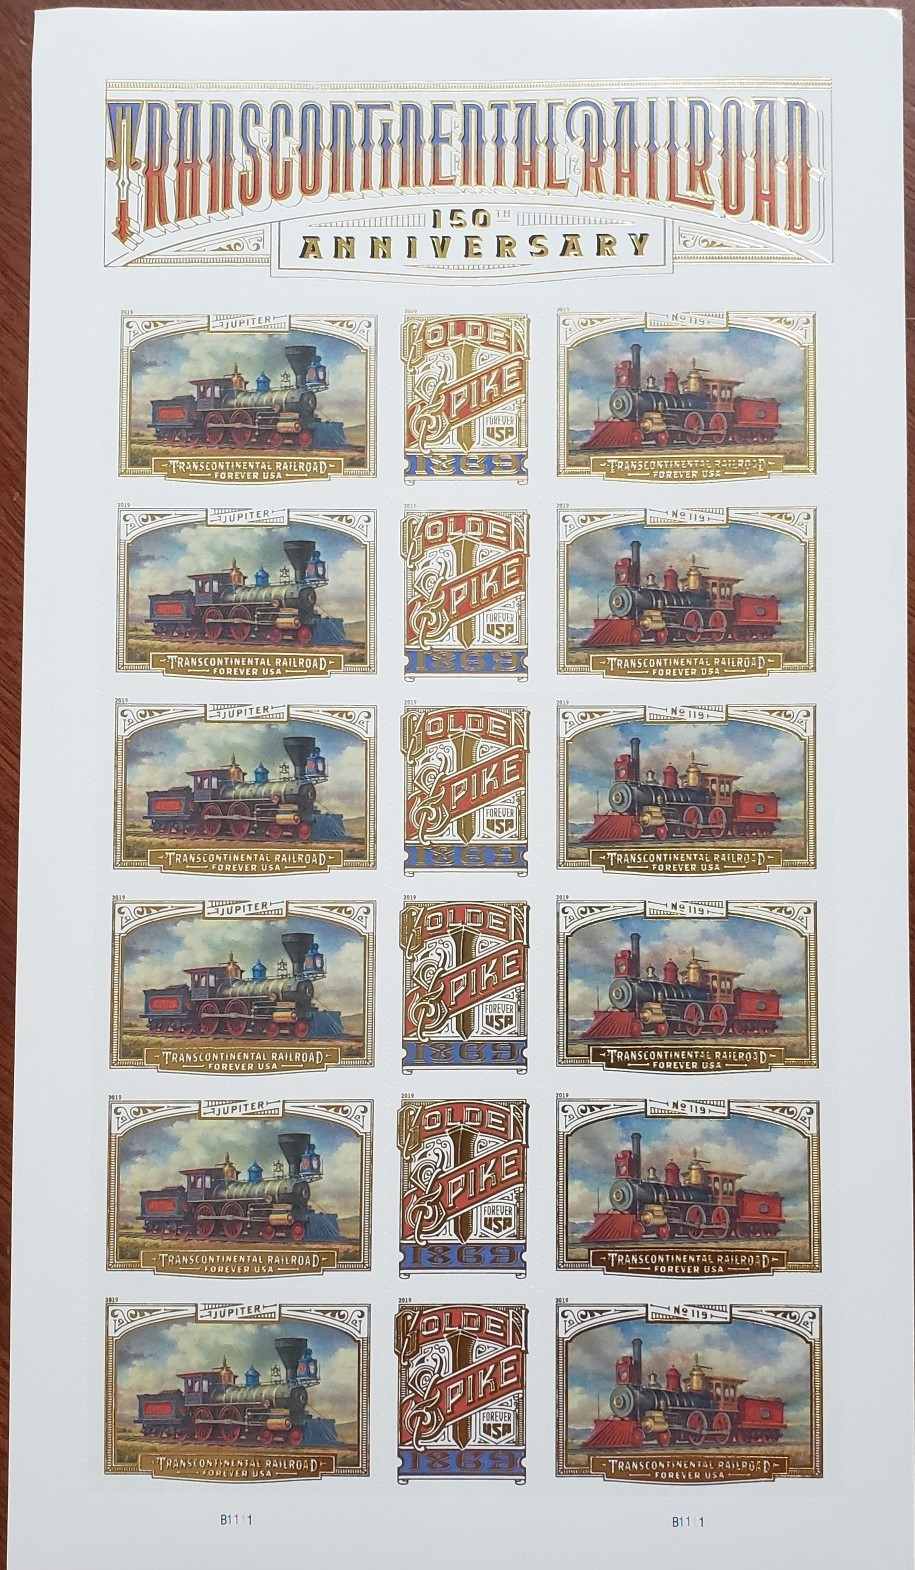 Transcontinental Railroad 150 Anniversary 2019 USPS 18 Forever Stamps Sheet